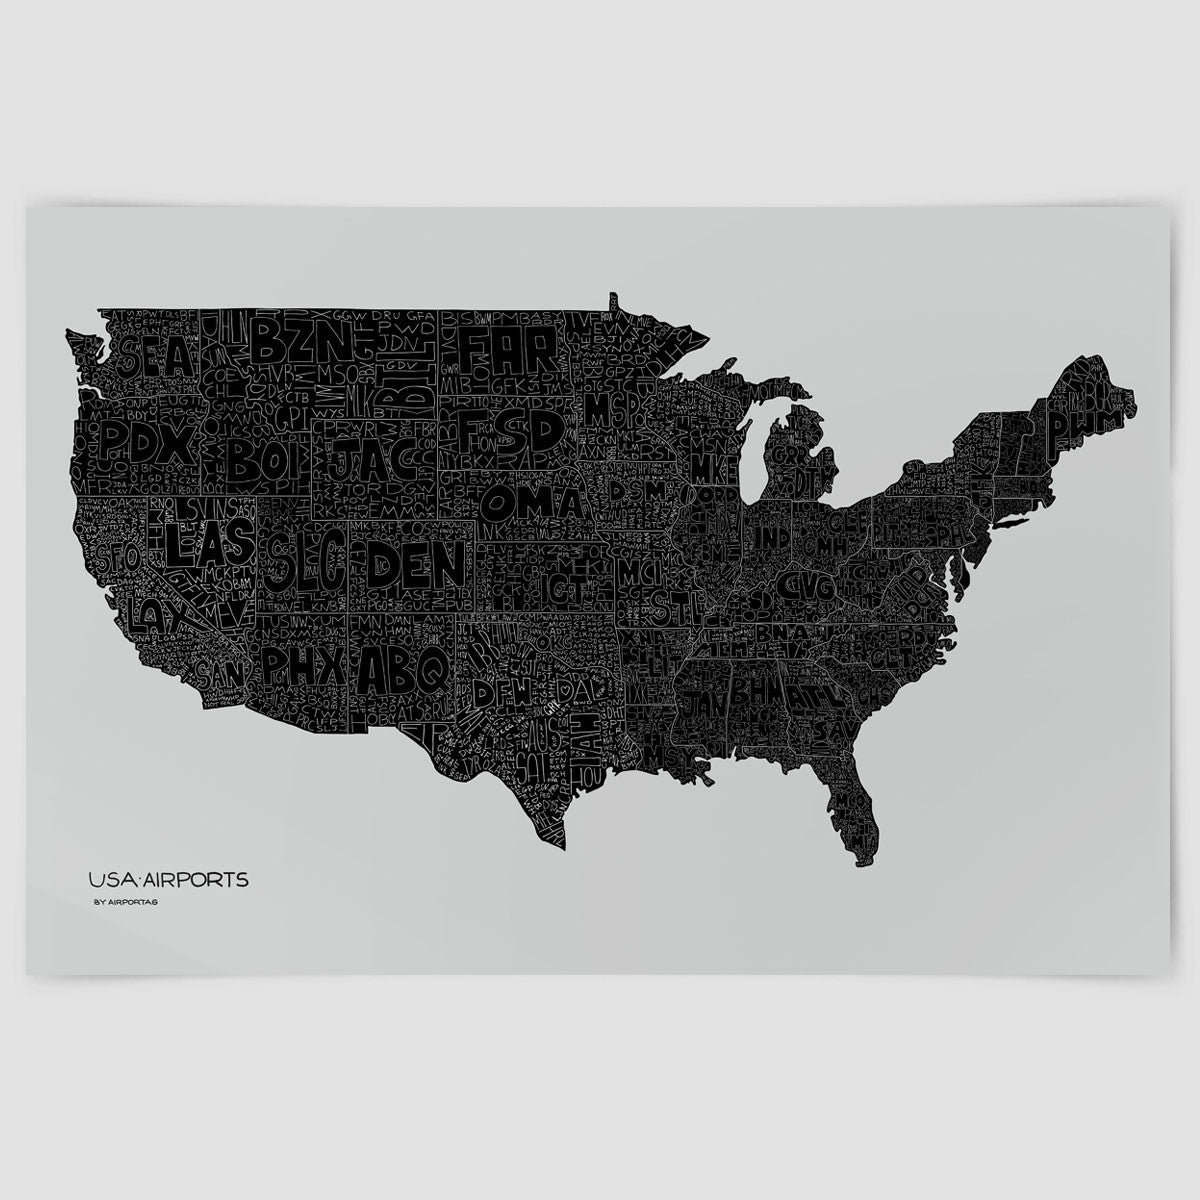 USA Airports Map - Poster